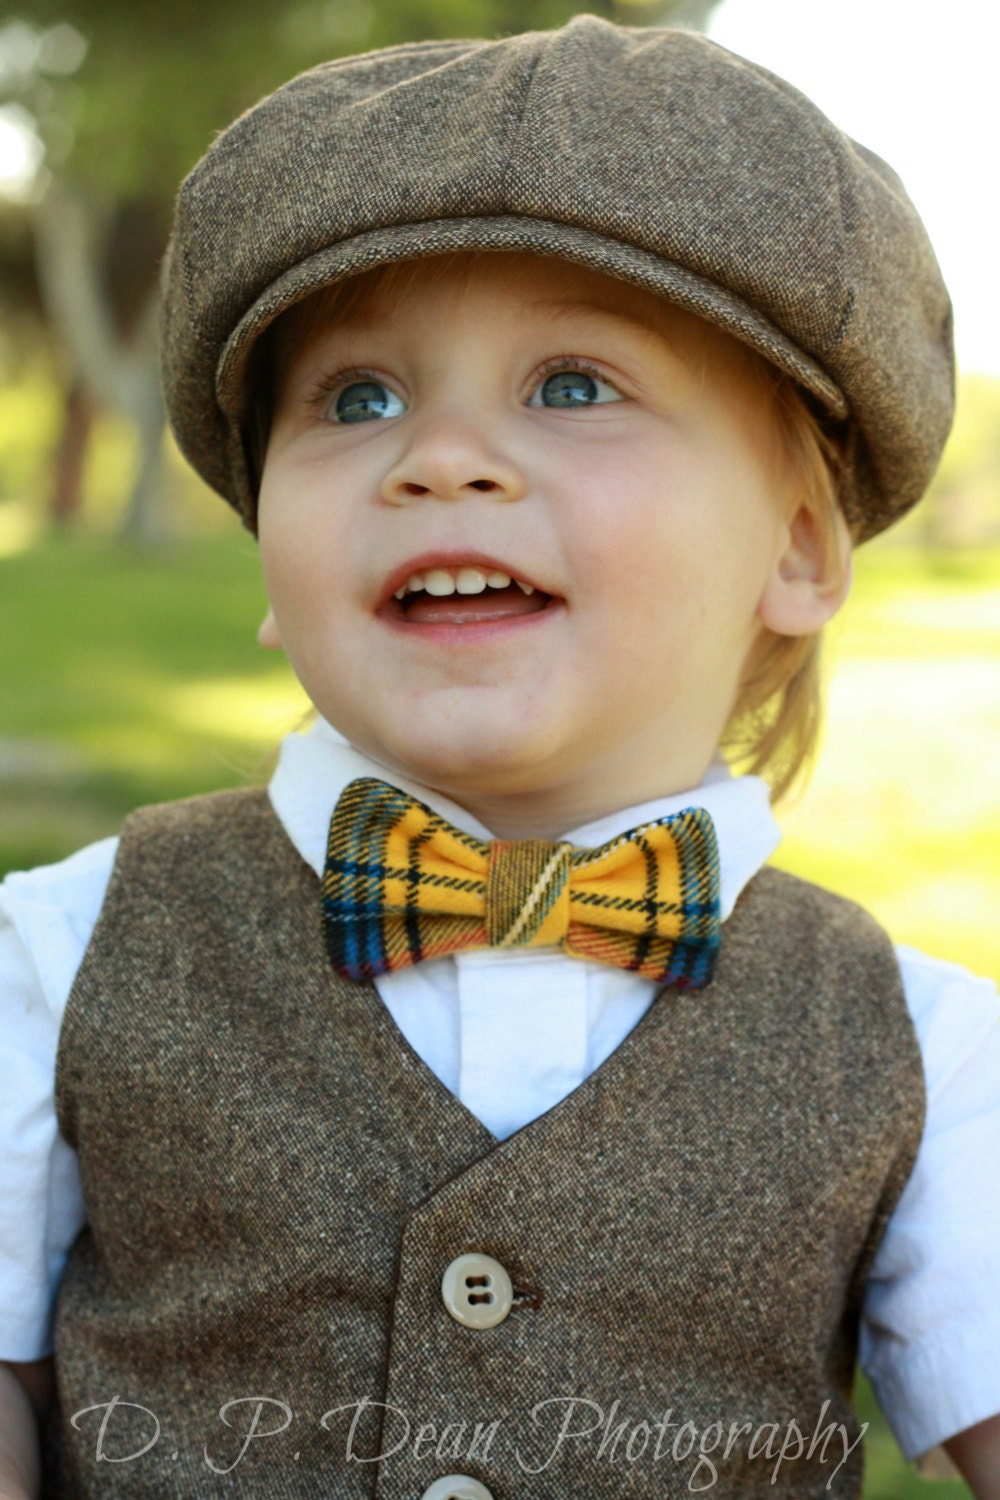 You searched for: baby boy bow tie! Etsy is the home to thousands of handmade, vintage, and one-of-a-kind products and gifts related to your search. No matter what you're looking for or where you are in the world, our global marketplace of sellers can help you find unique and affordable options. Let's get started!